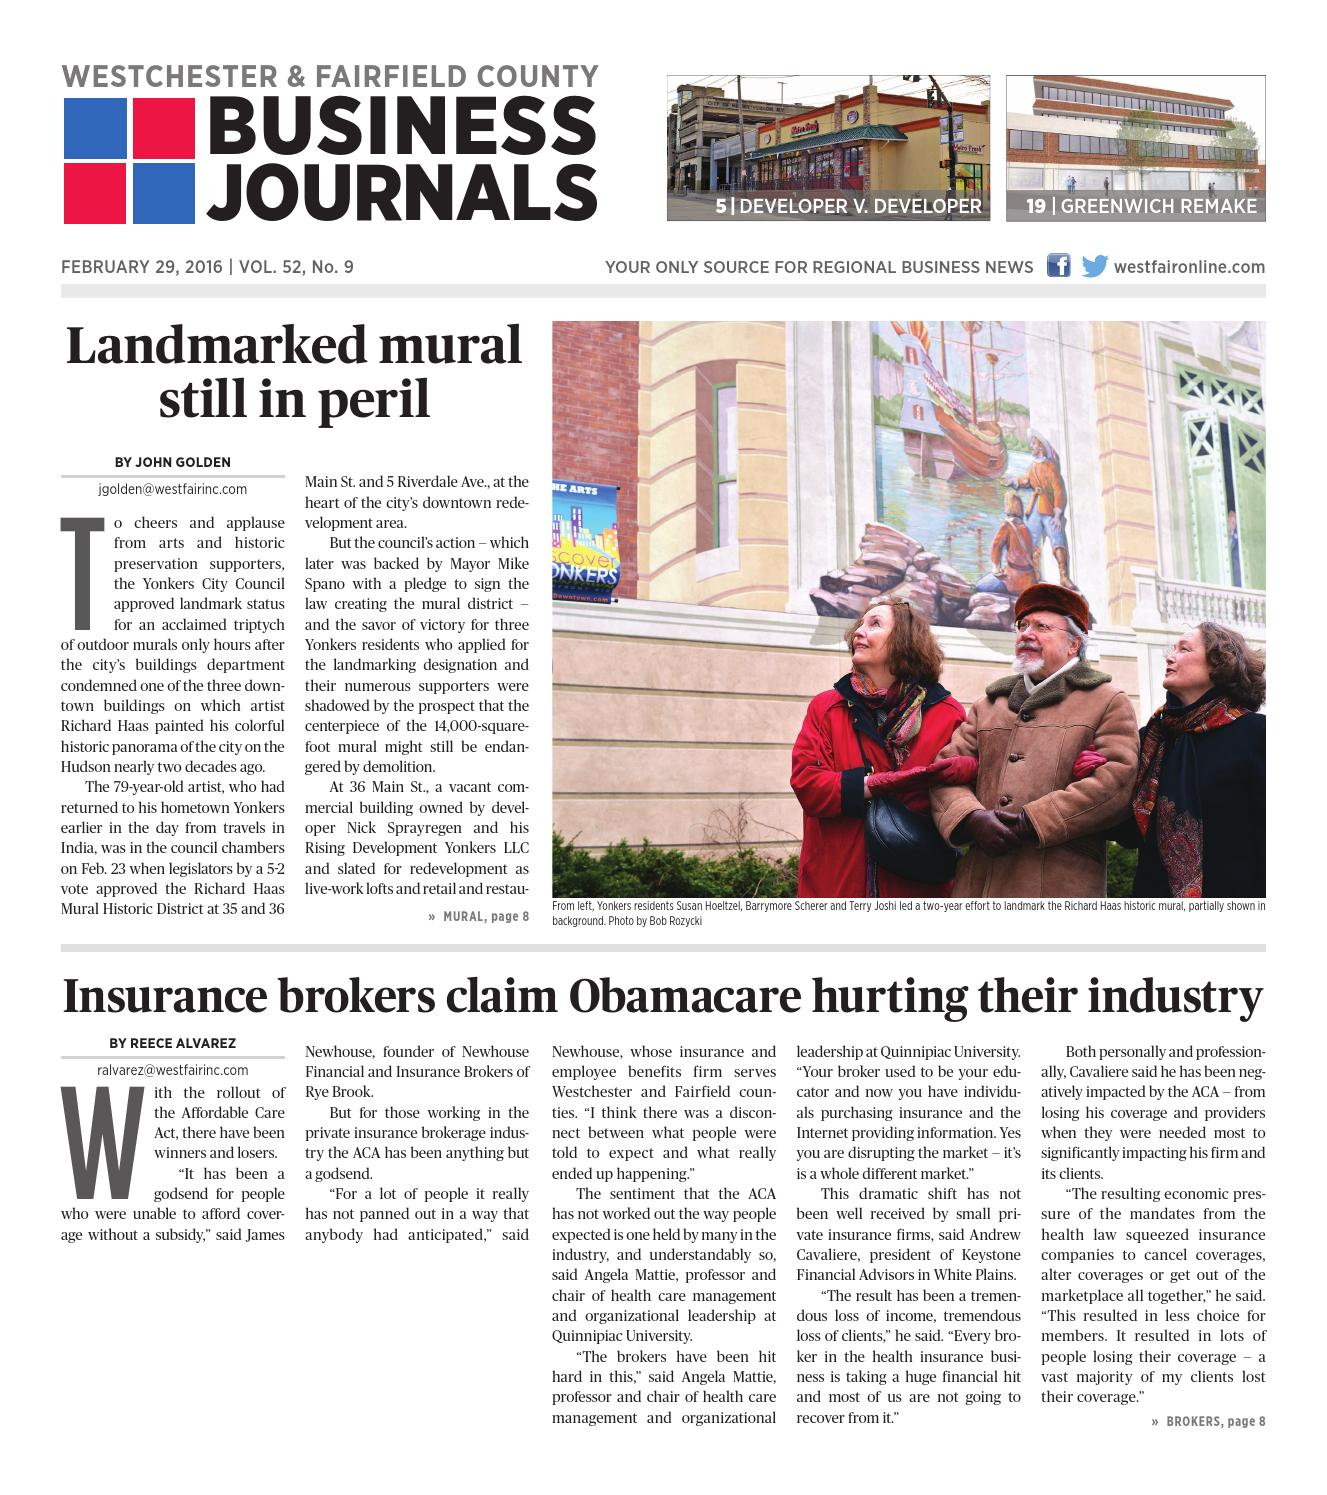 Westchester fairfield county business journal 022916 by wag westchester fairfield county business journal 022916 by wag magazine issuu fandeluxe Images